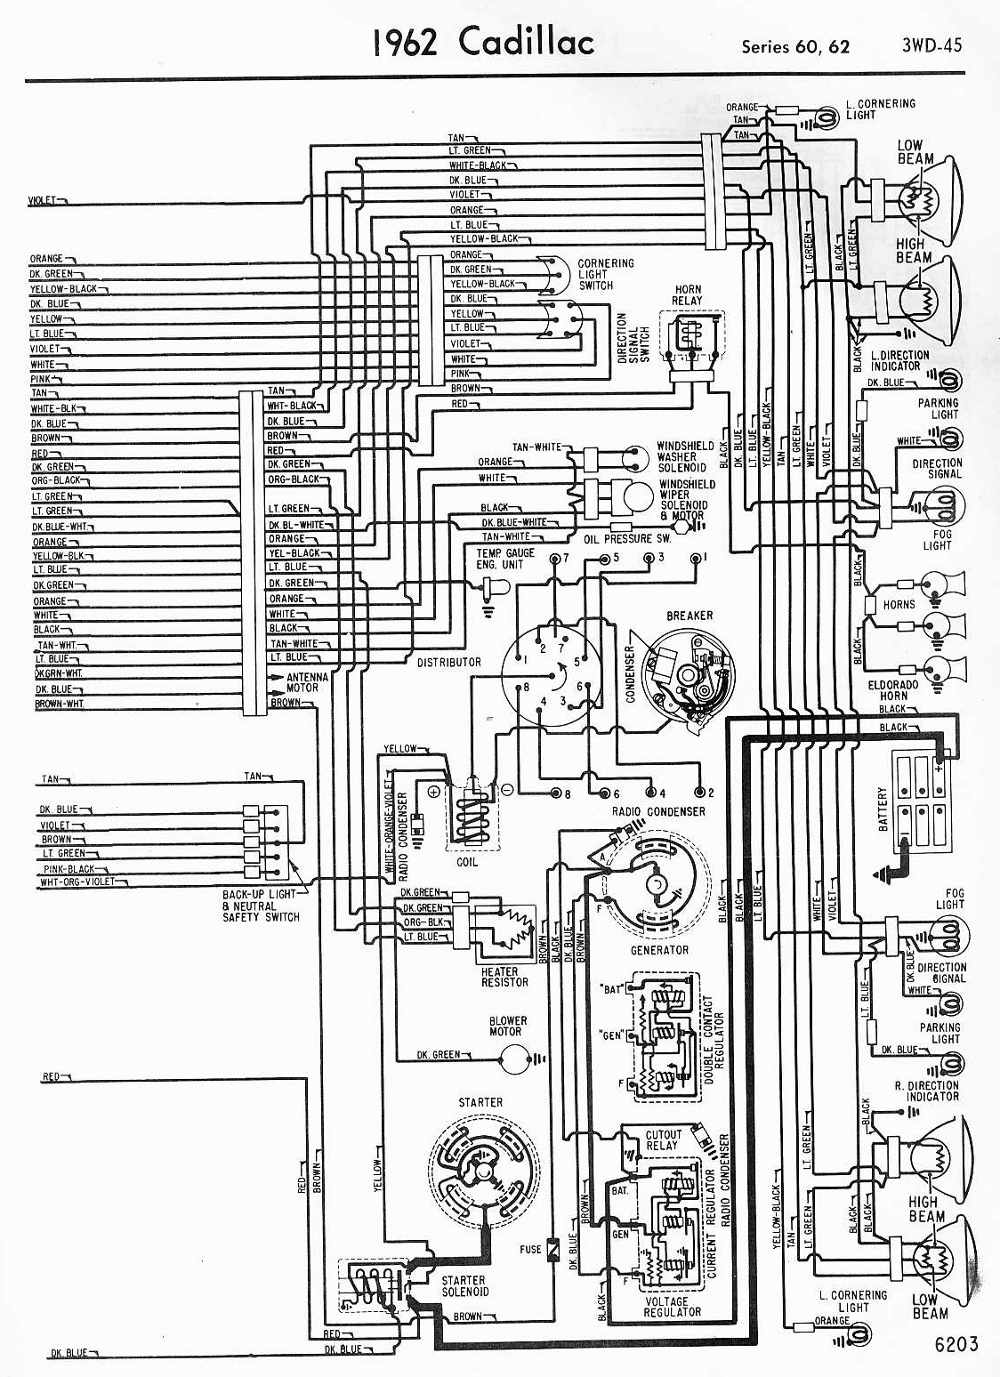 Cadillac Wiring Diagrams on cadillac fuse box diagram, 1963 cadillac vacuum diagrams, cadillac wiring parts, cadillac ac diagram, cadillac deville starter wiring, cadillac troubleshooting, 2000 cadillac eldorado electrical diagrams, cadillac manual transmission,